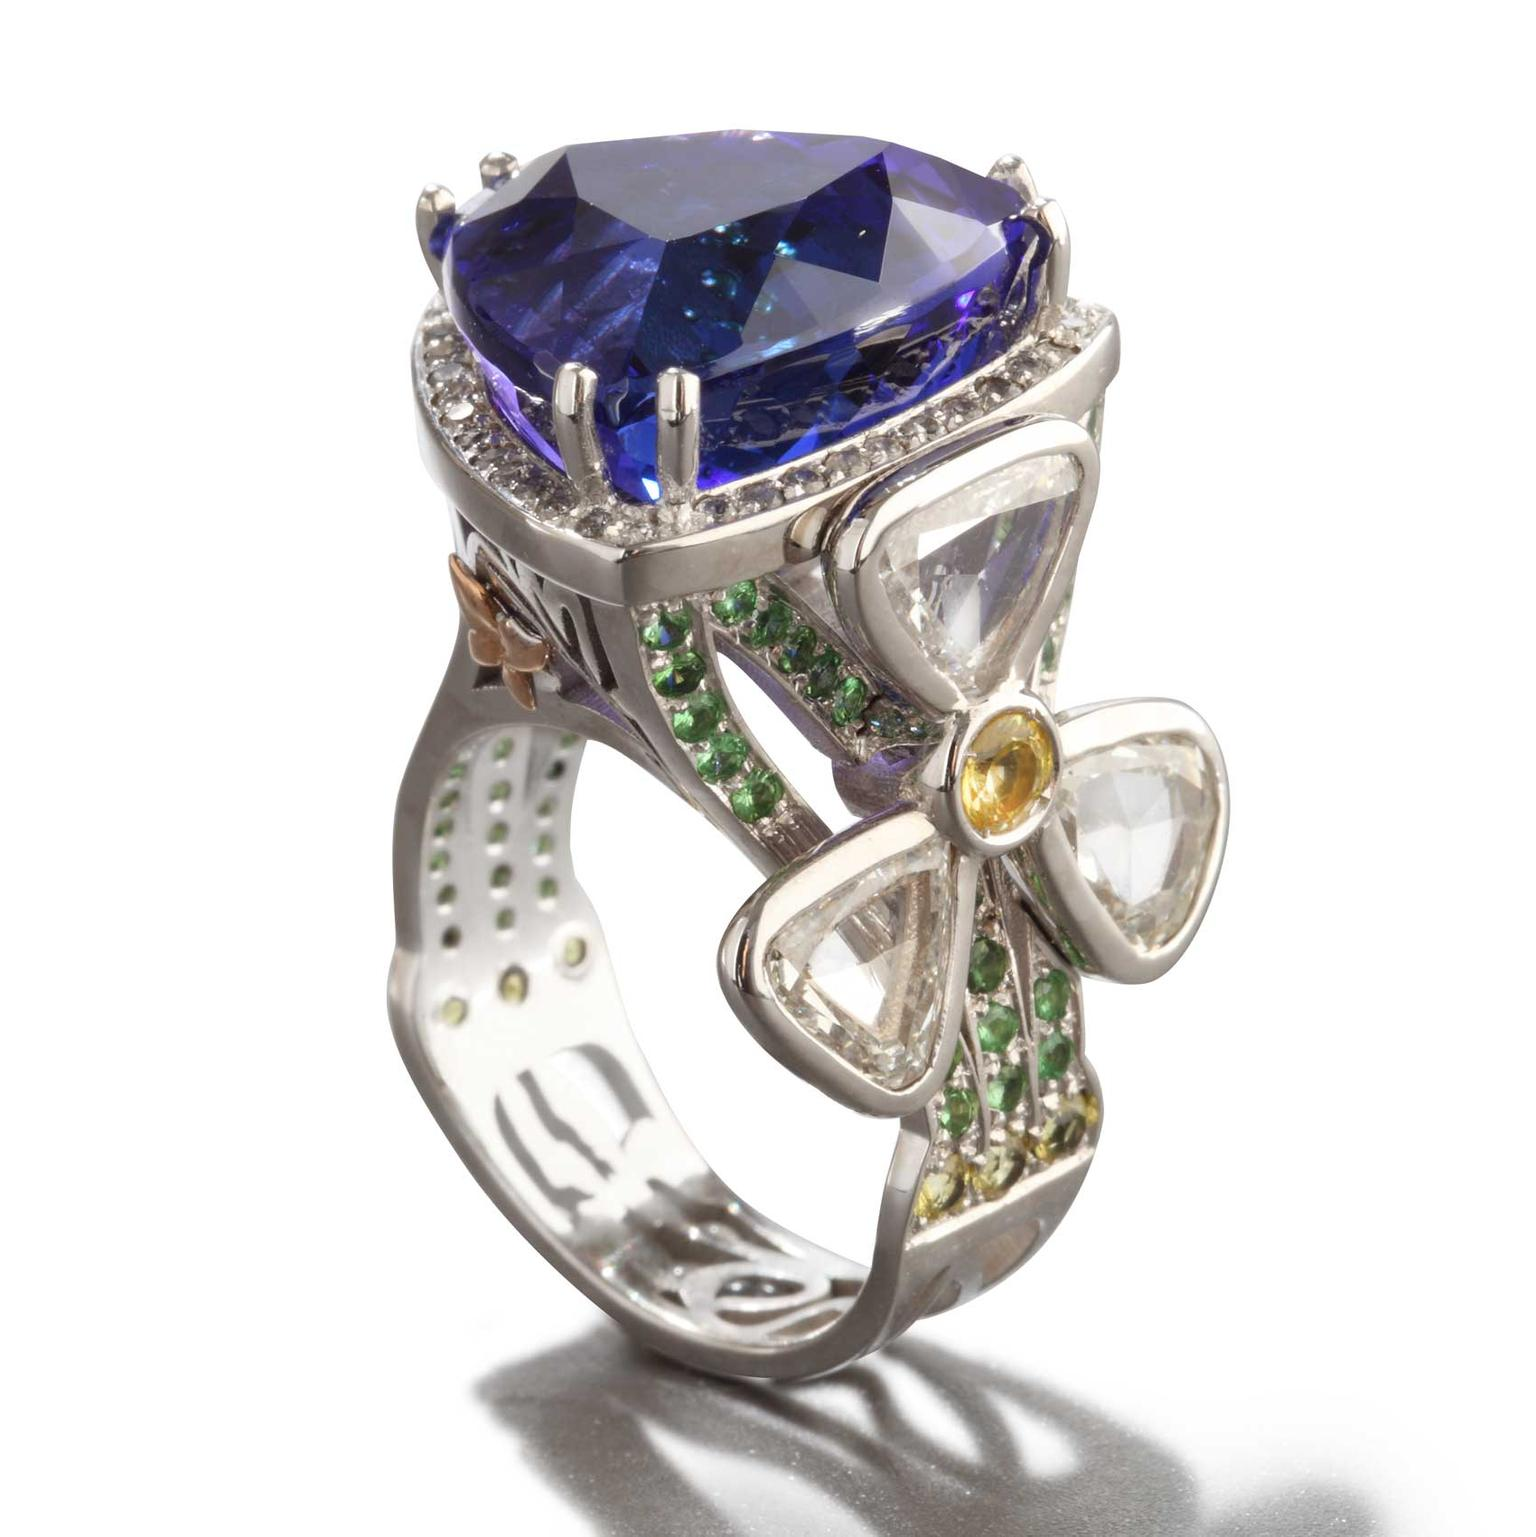 Iris tanzanite diamond sapphire and tsavorite ring